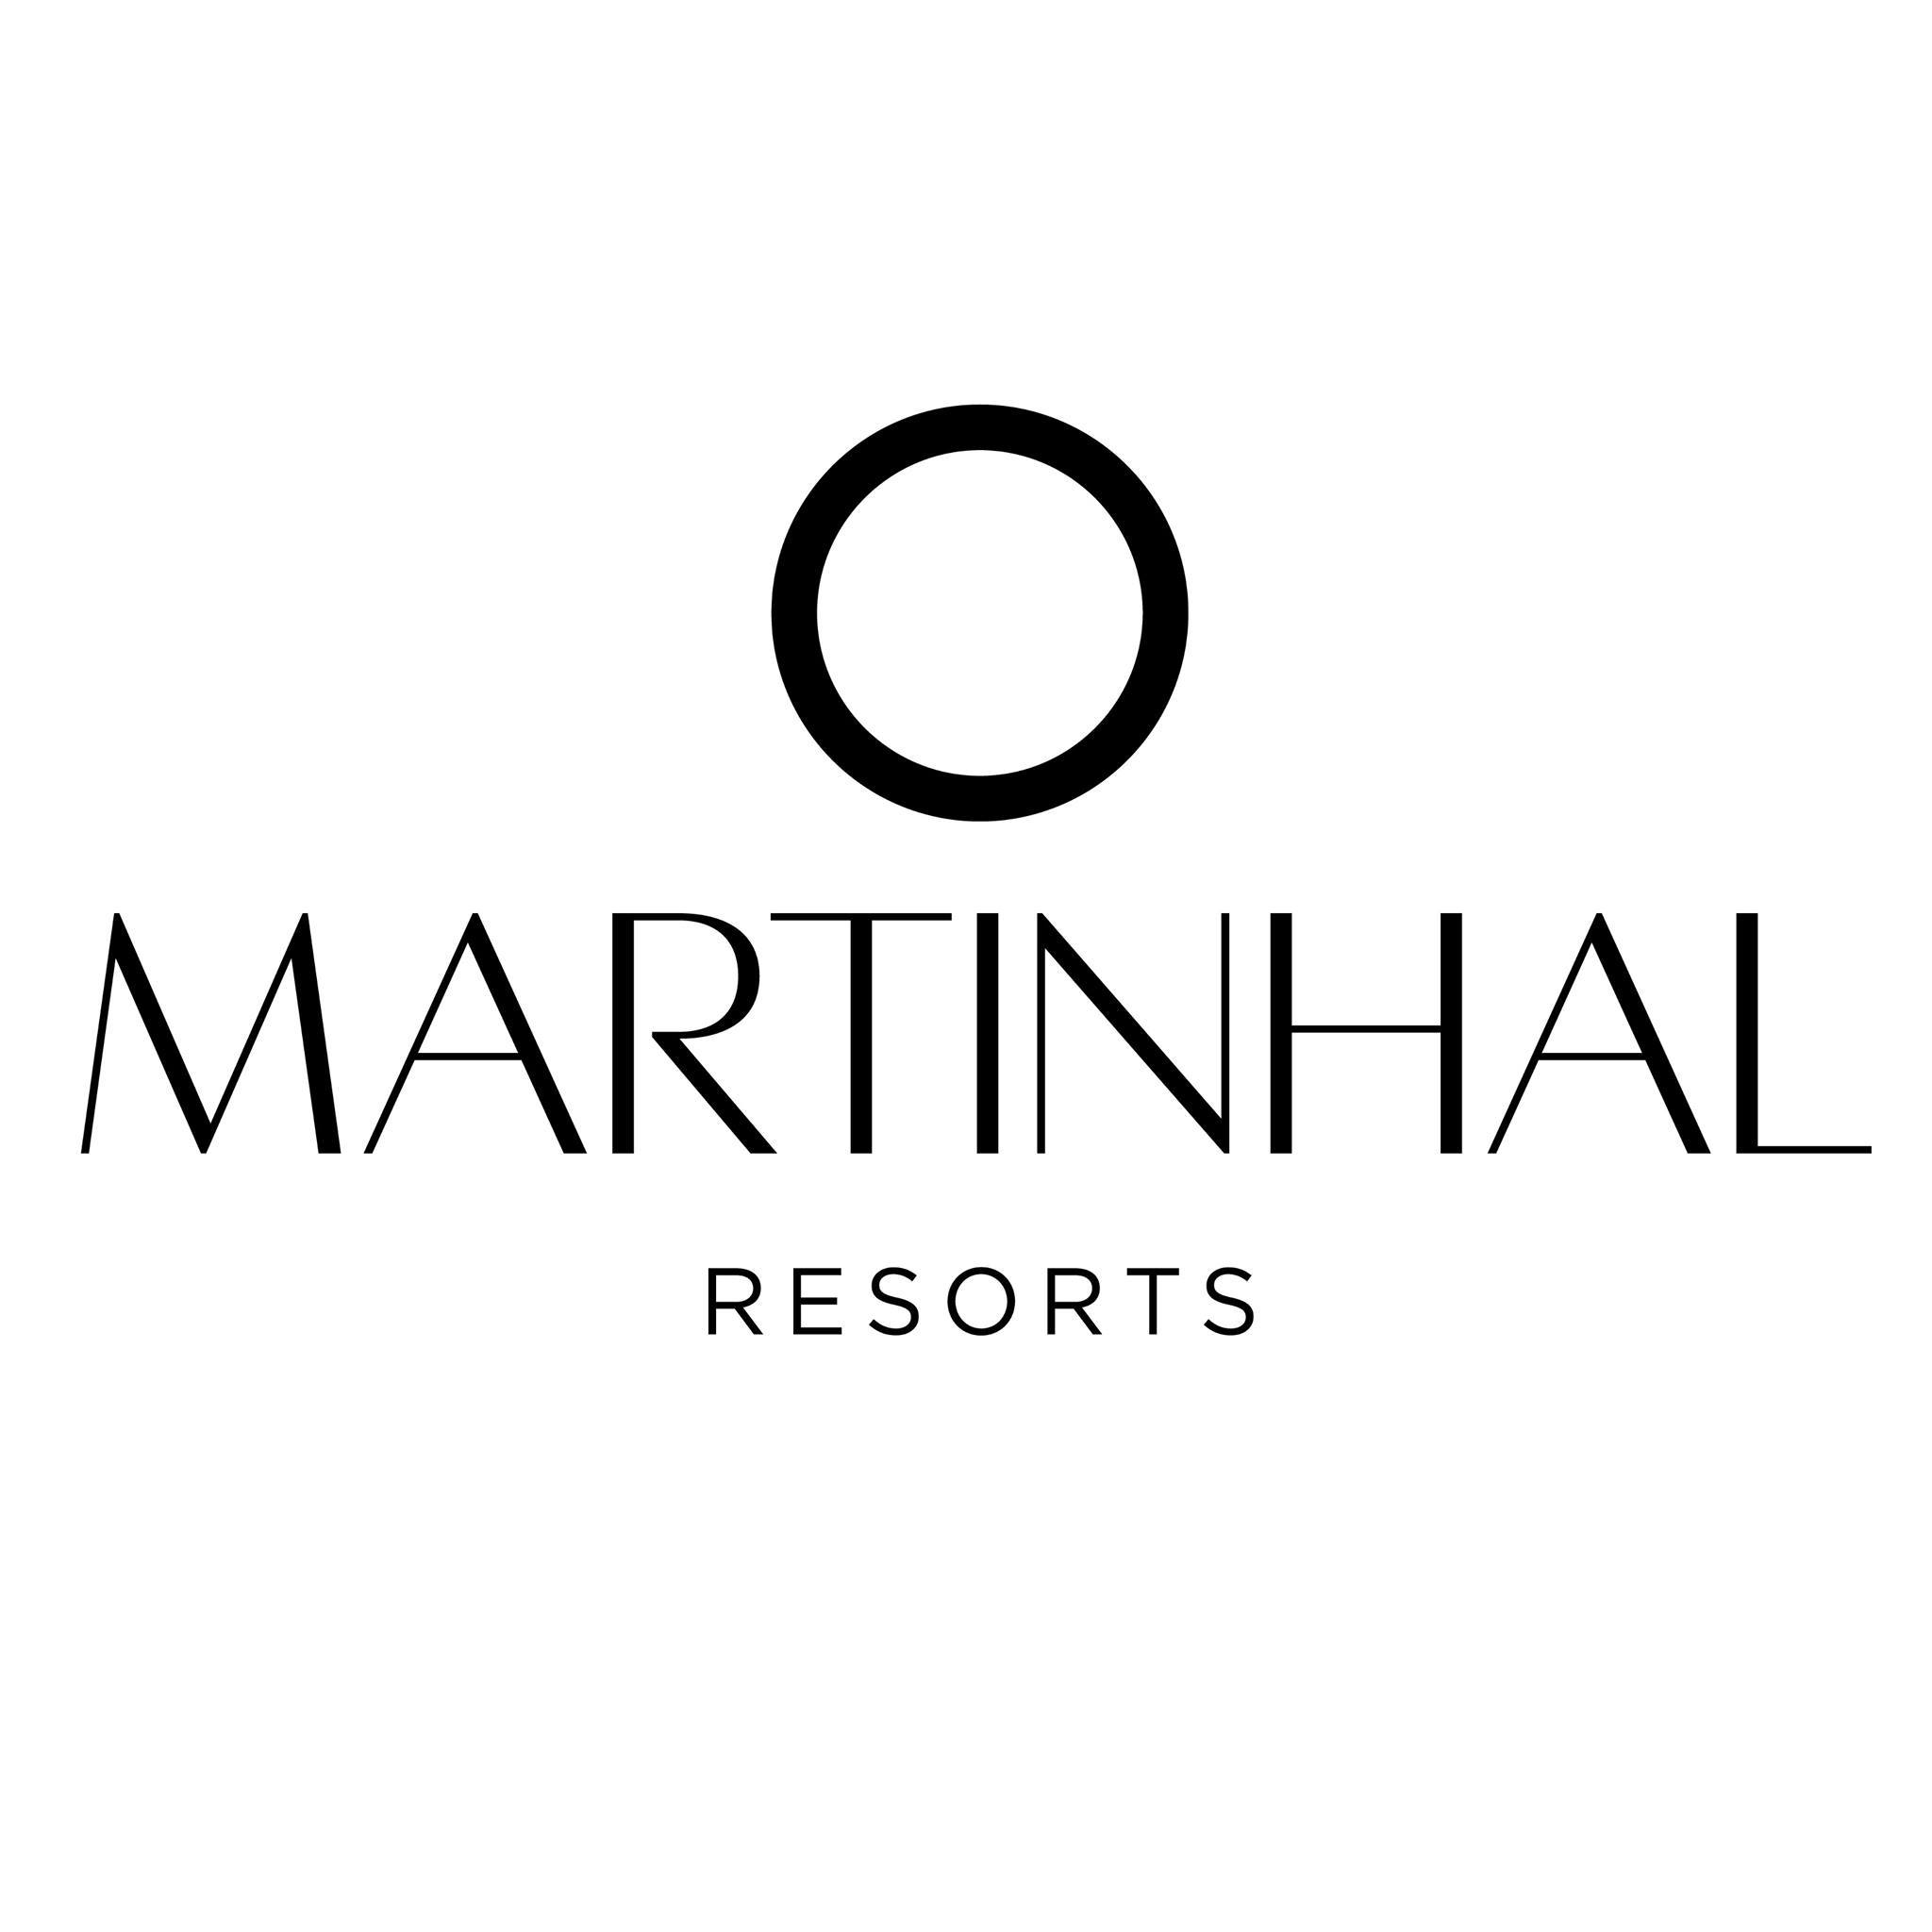 Family Friendly Resort Martinhal Quinta - Located in the famous Quinta do Lago region of the Algarve, featuring a collection of private villas.